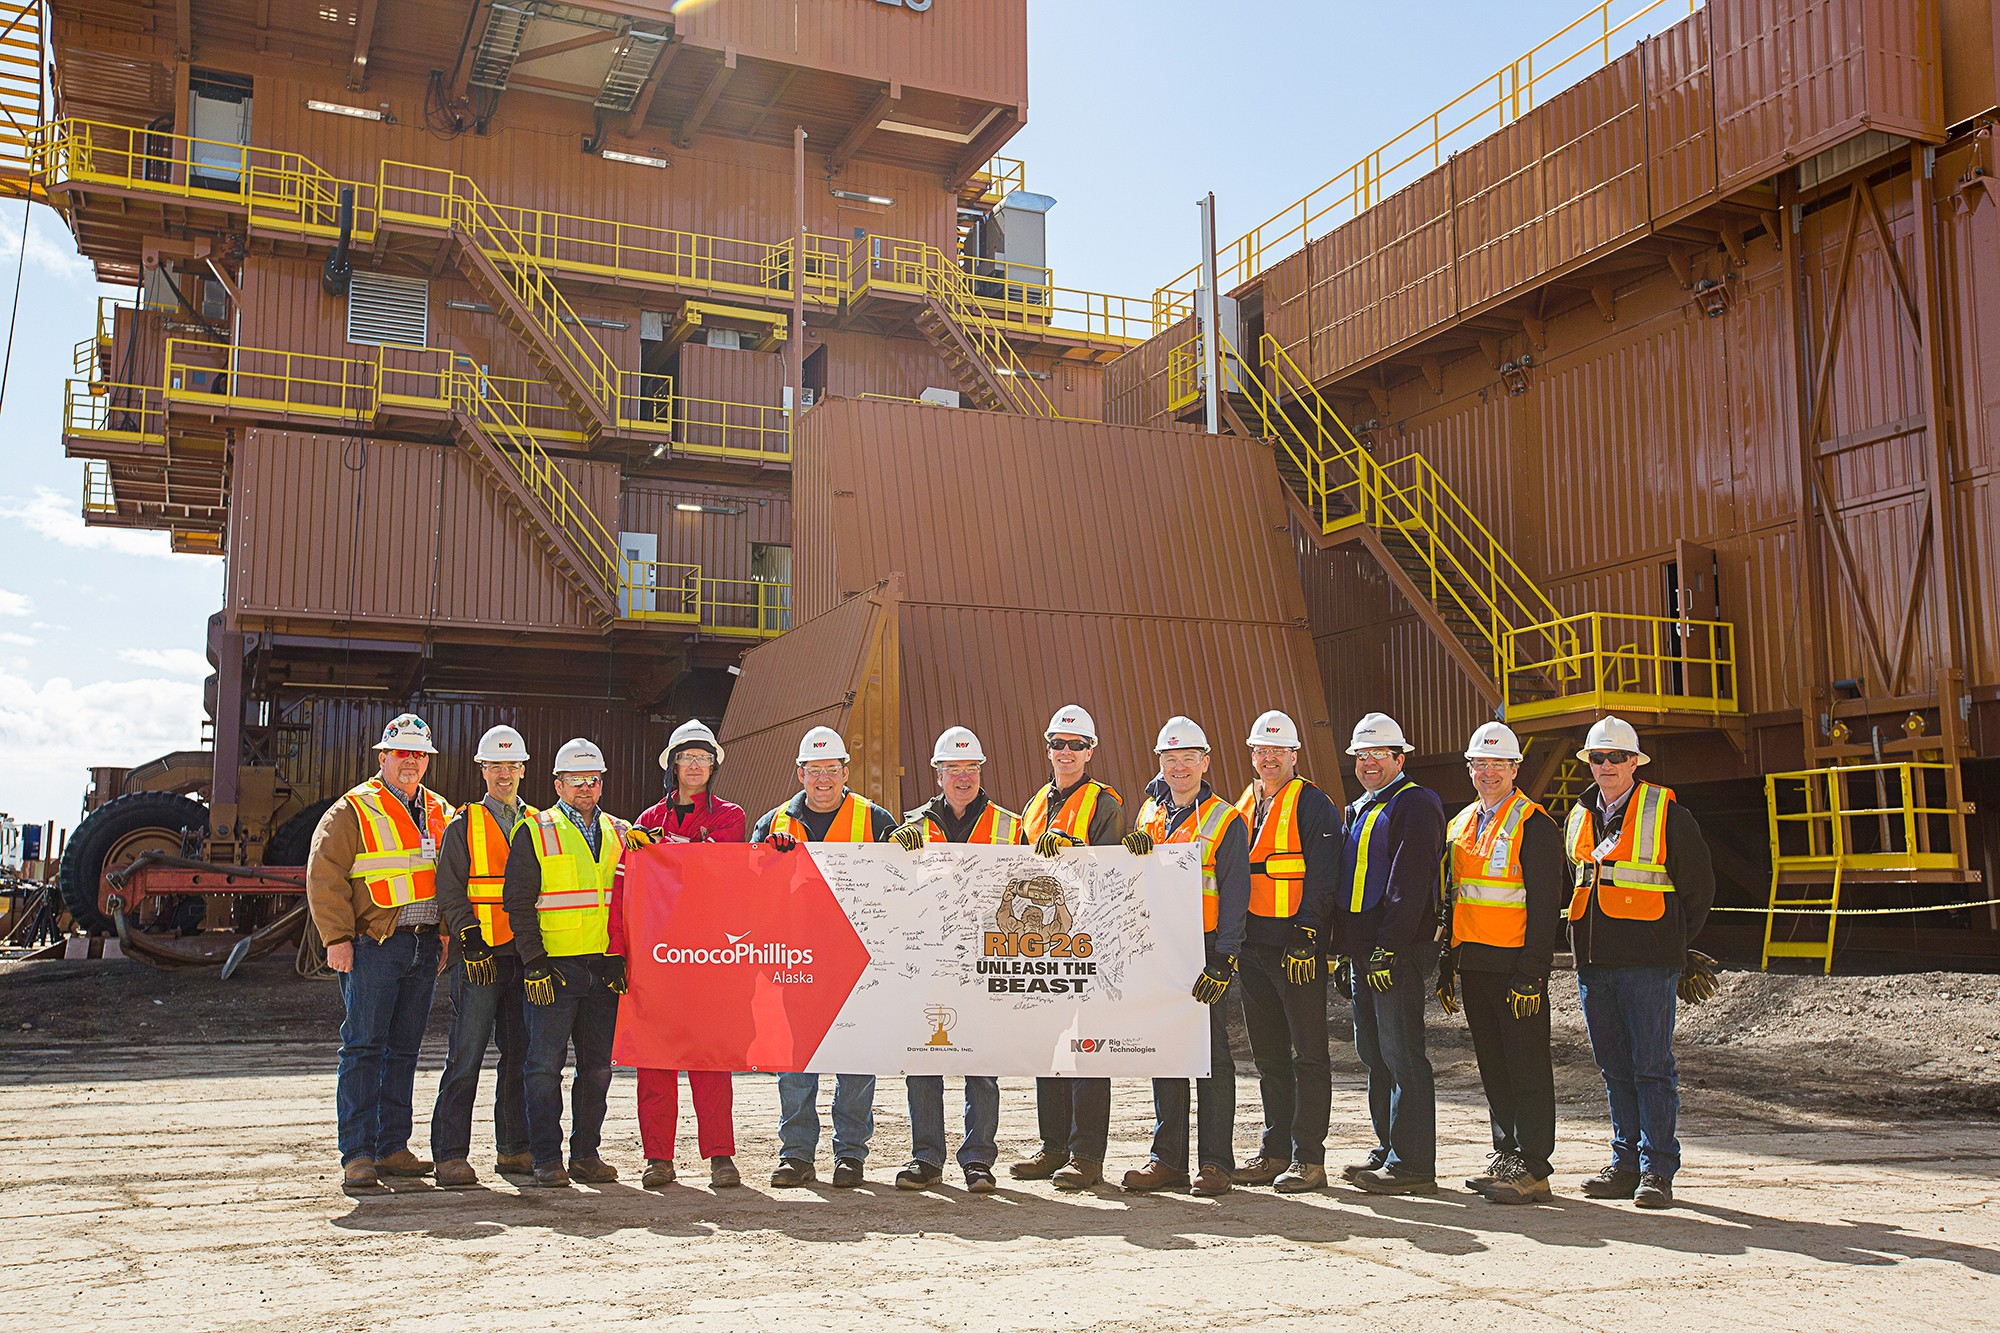 Group of 12 workers in front of rig holding banner